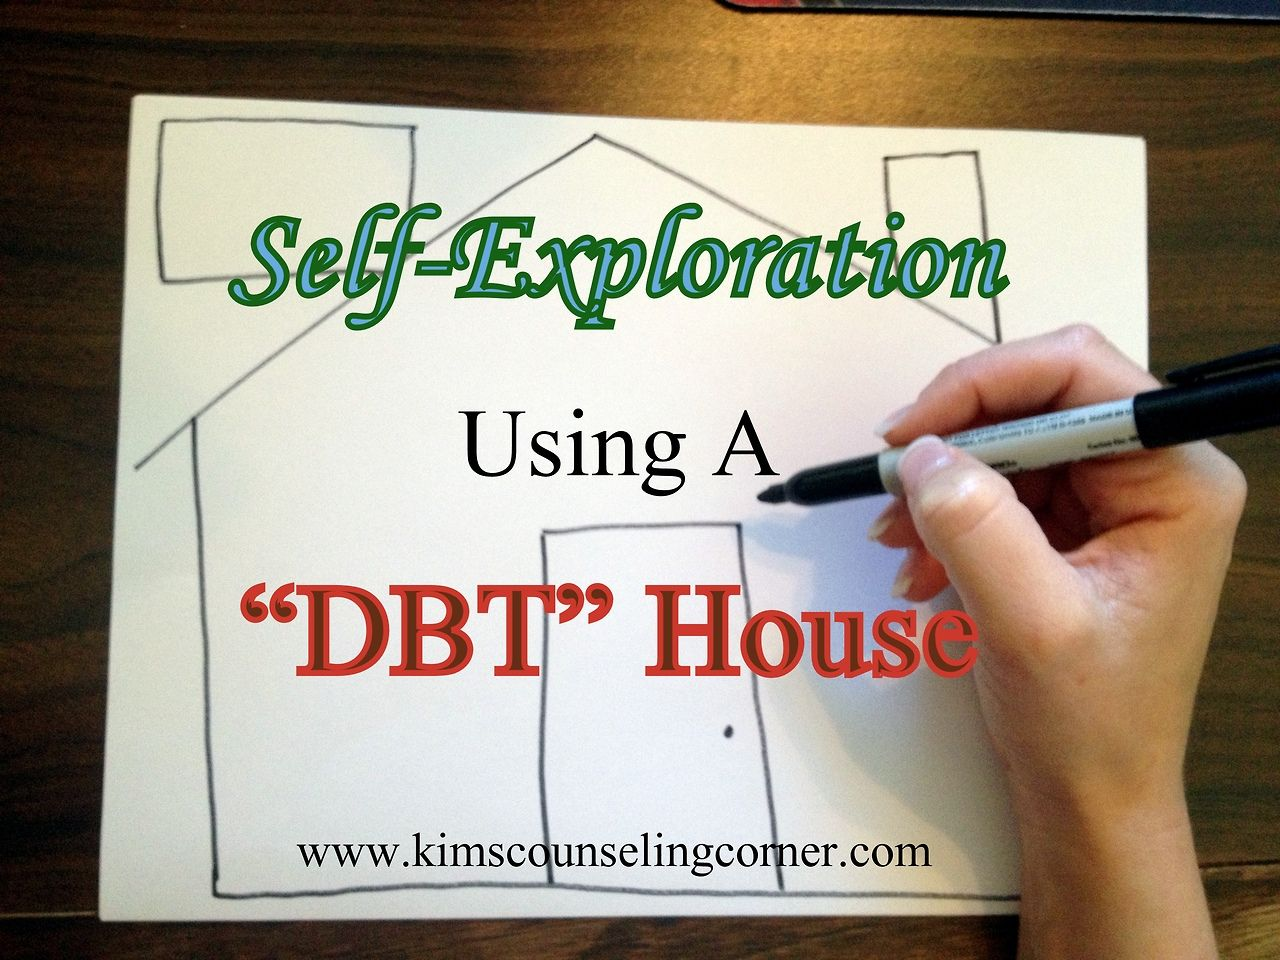 Dialectical Behavioral Therapy Dbt House Instructions